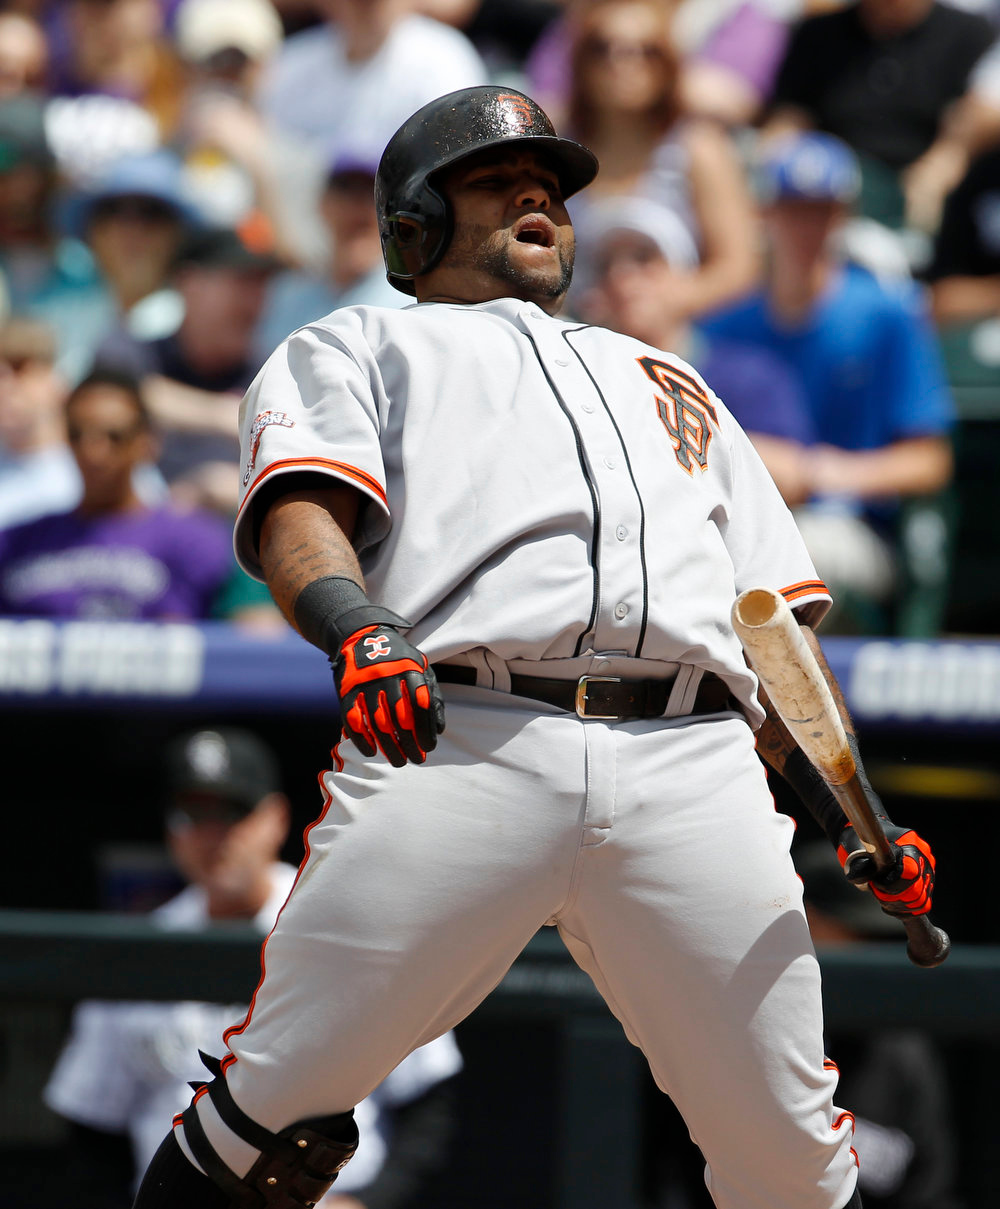 . San Francisco Giants\' Pablo Sandoval reacts after being called out on strikes against the Colorado Rockies to close out the top of the first inning of a baseball game in Denver on Sunday, May 19, 2013. (AP Photo/David Zalubowski)